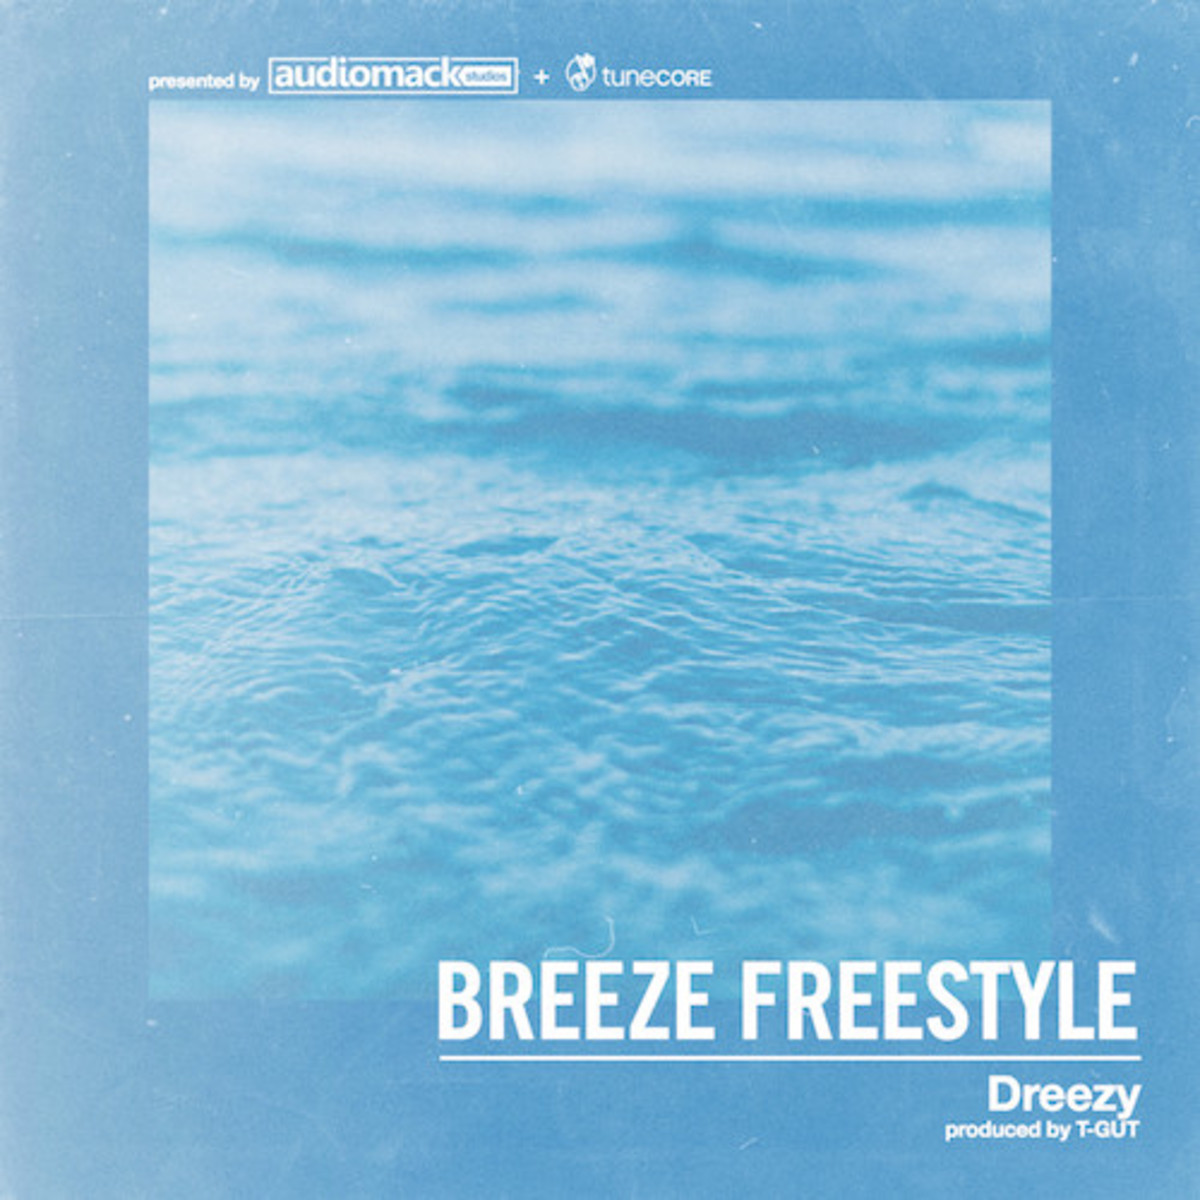 dreezy-breeze-freestyle.jpg